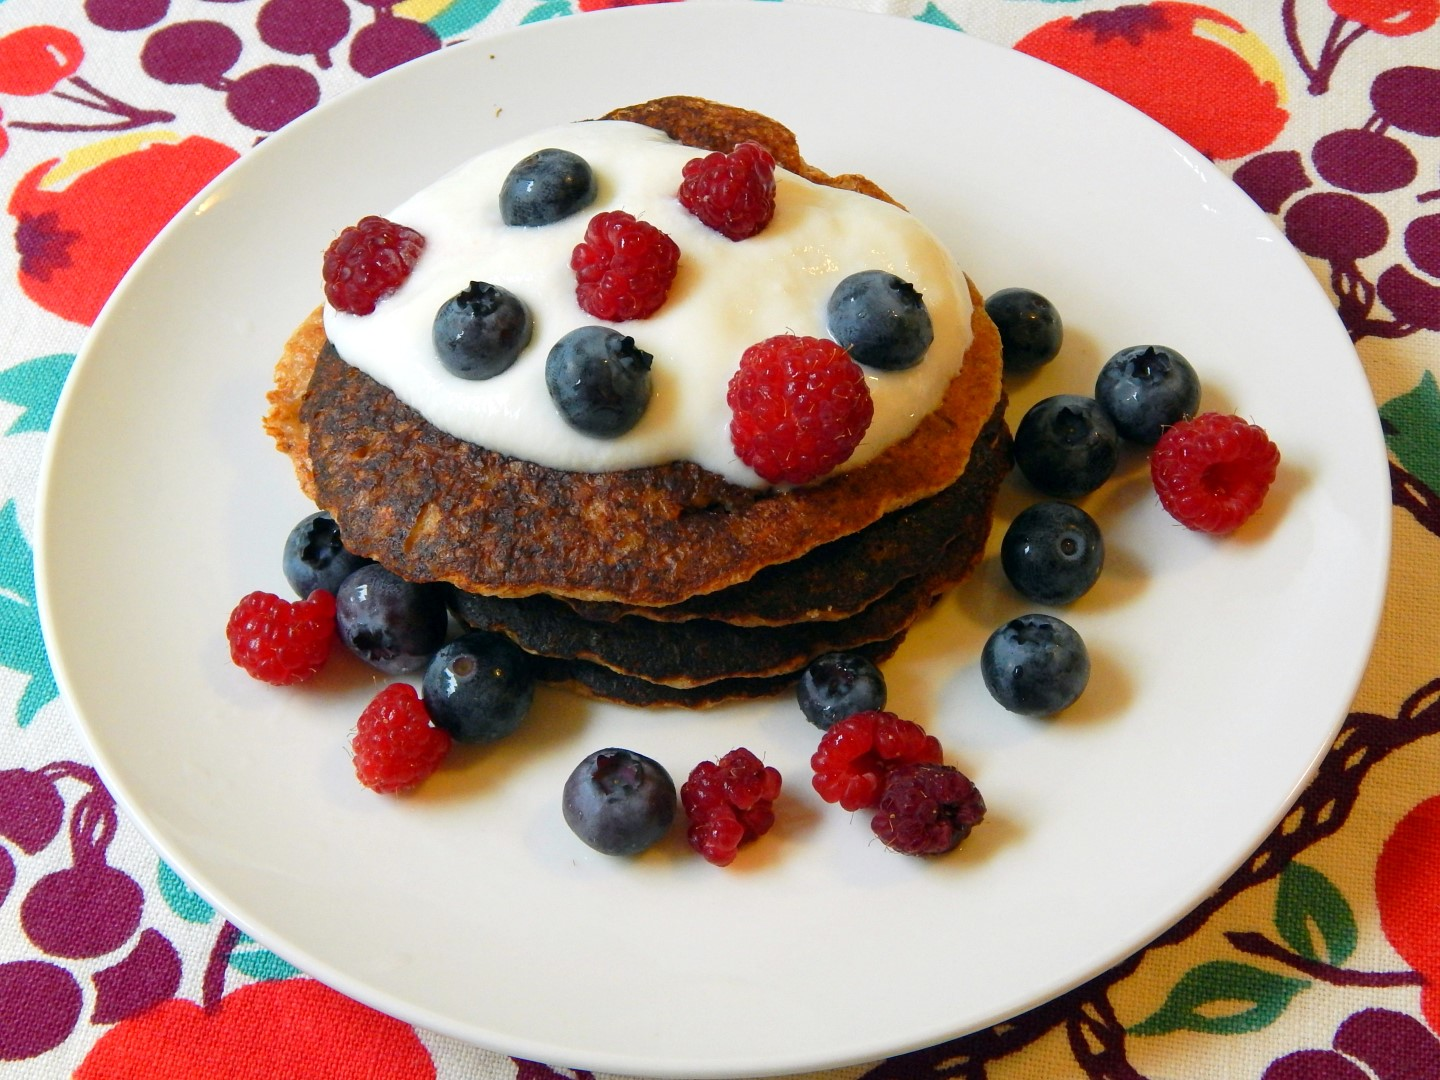 Stack of buckwheat groat pancakes.